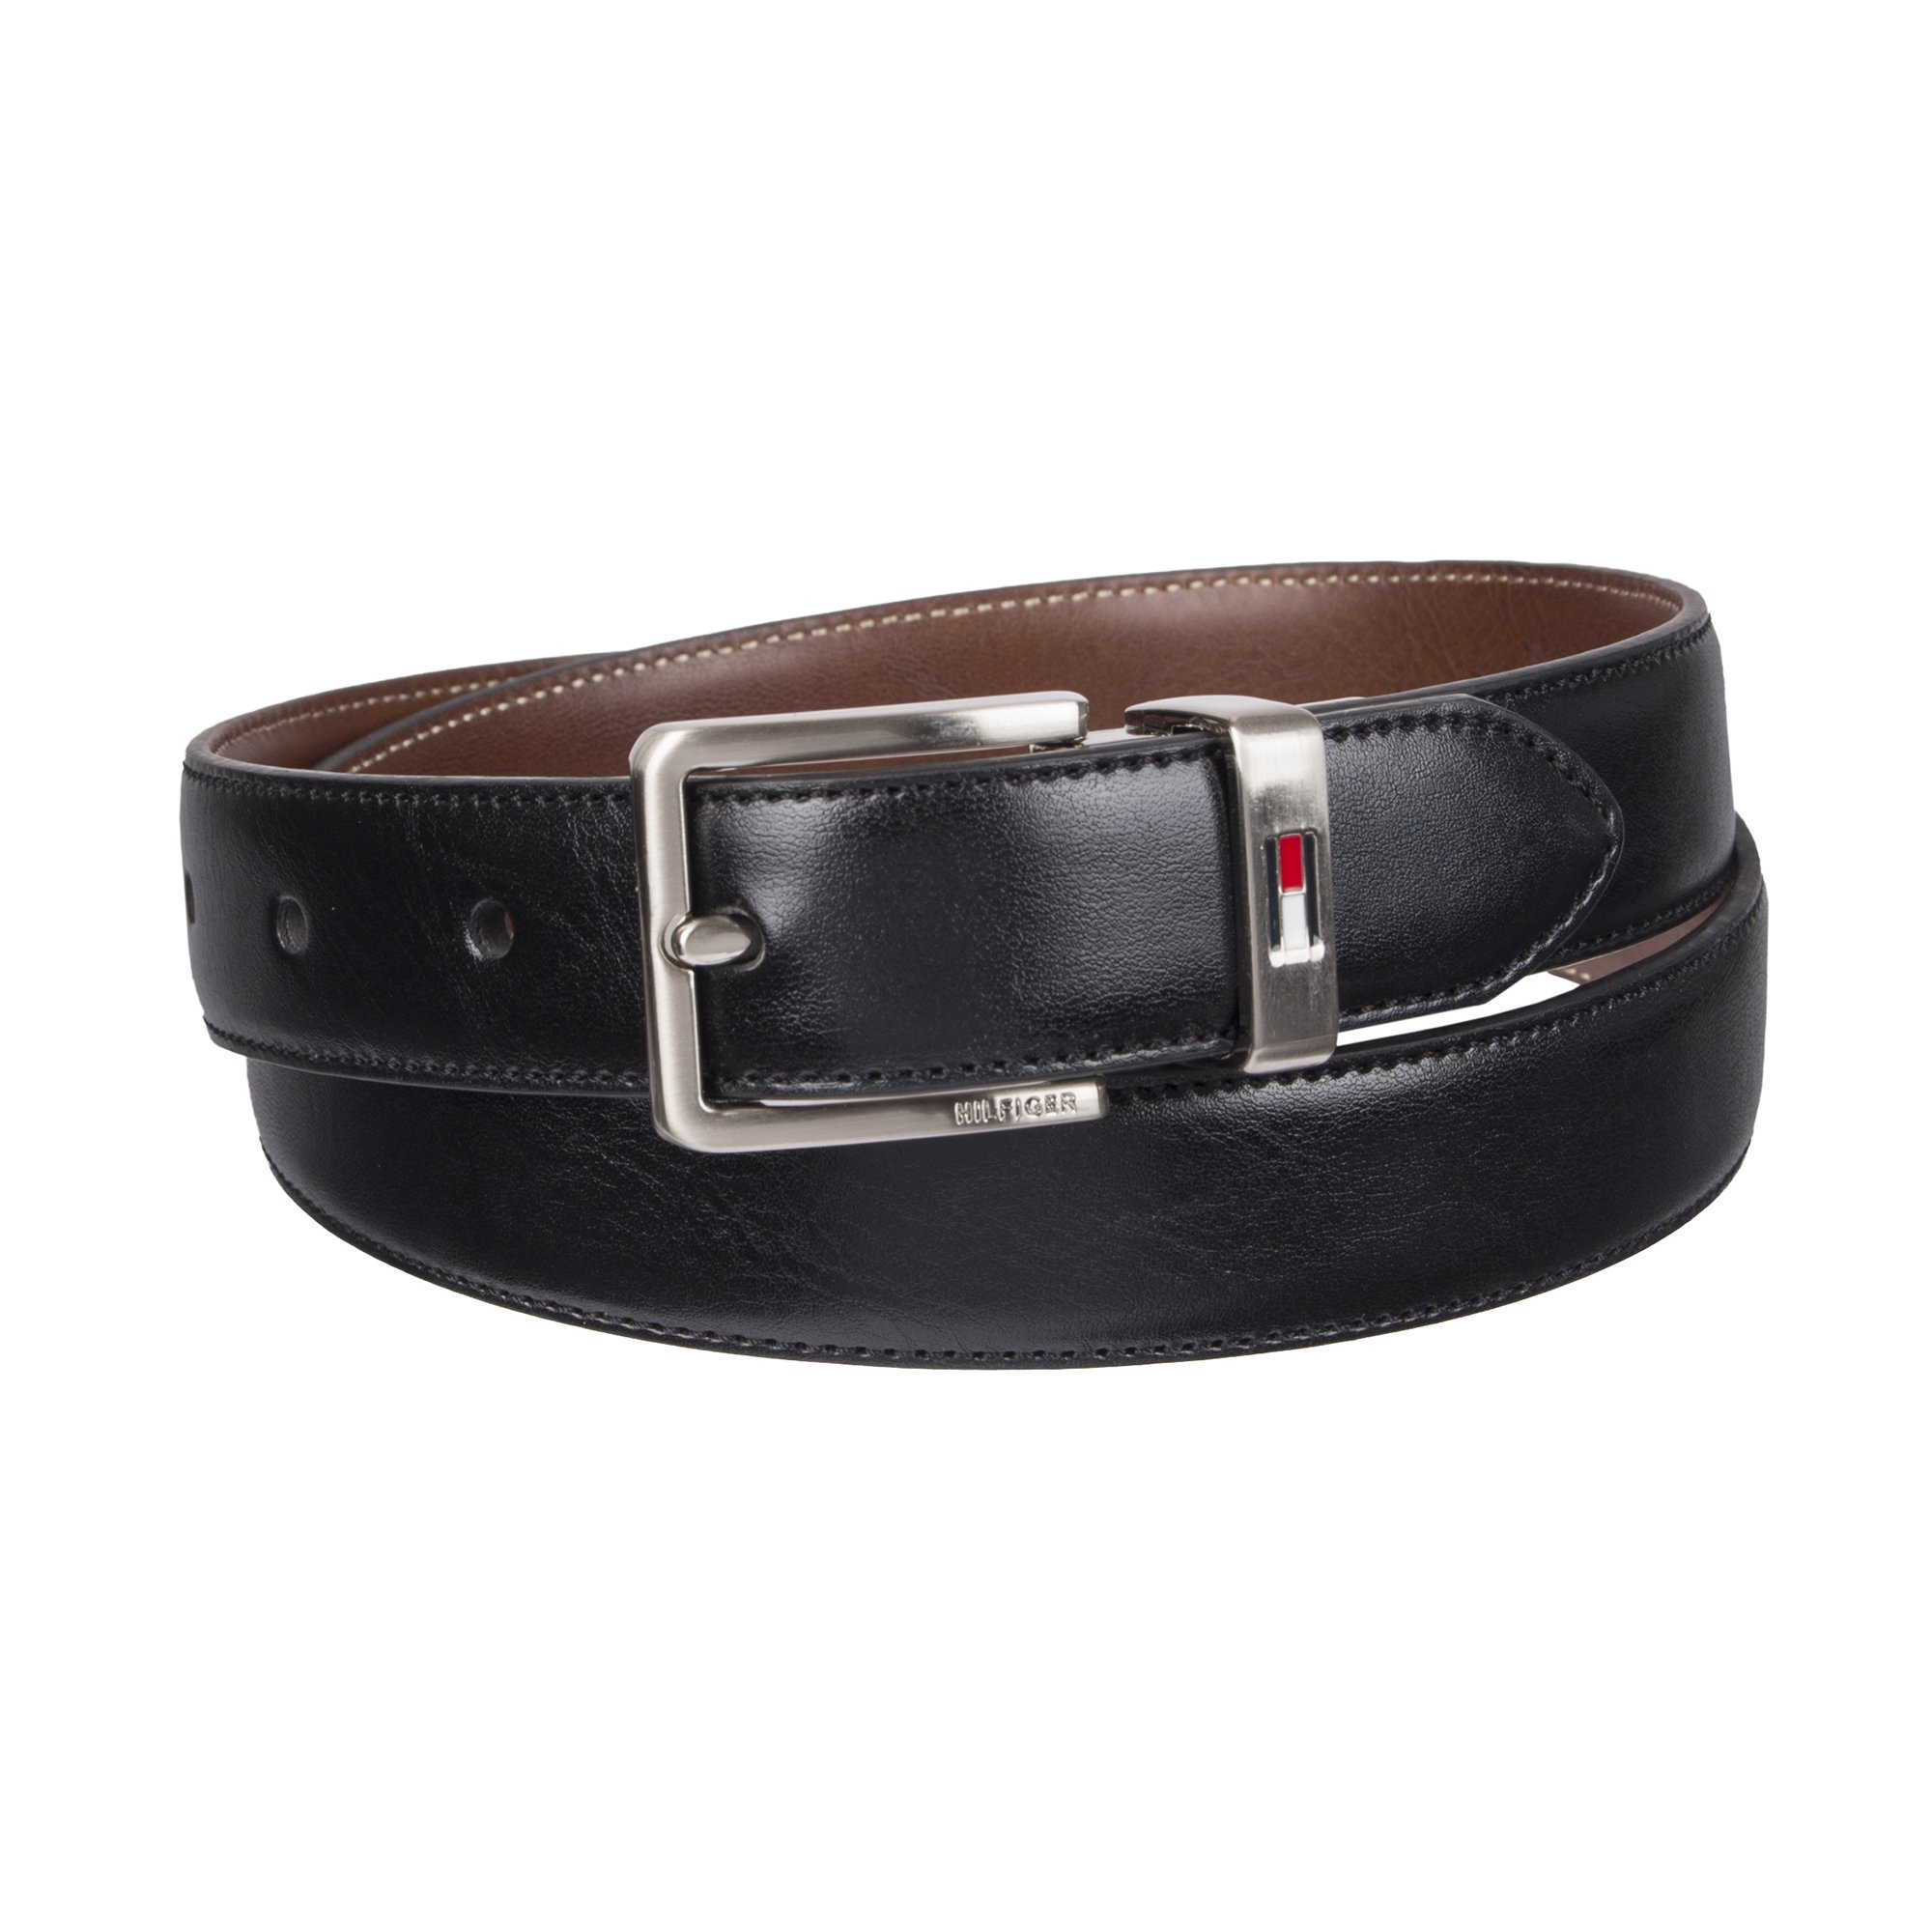 Tommy Hilfiger Boys' Big Reversible Dress Belt, Black/Cognac, Medium